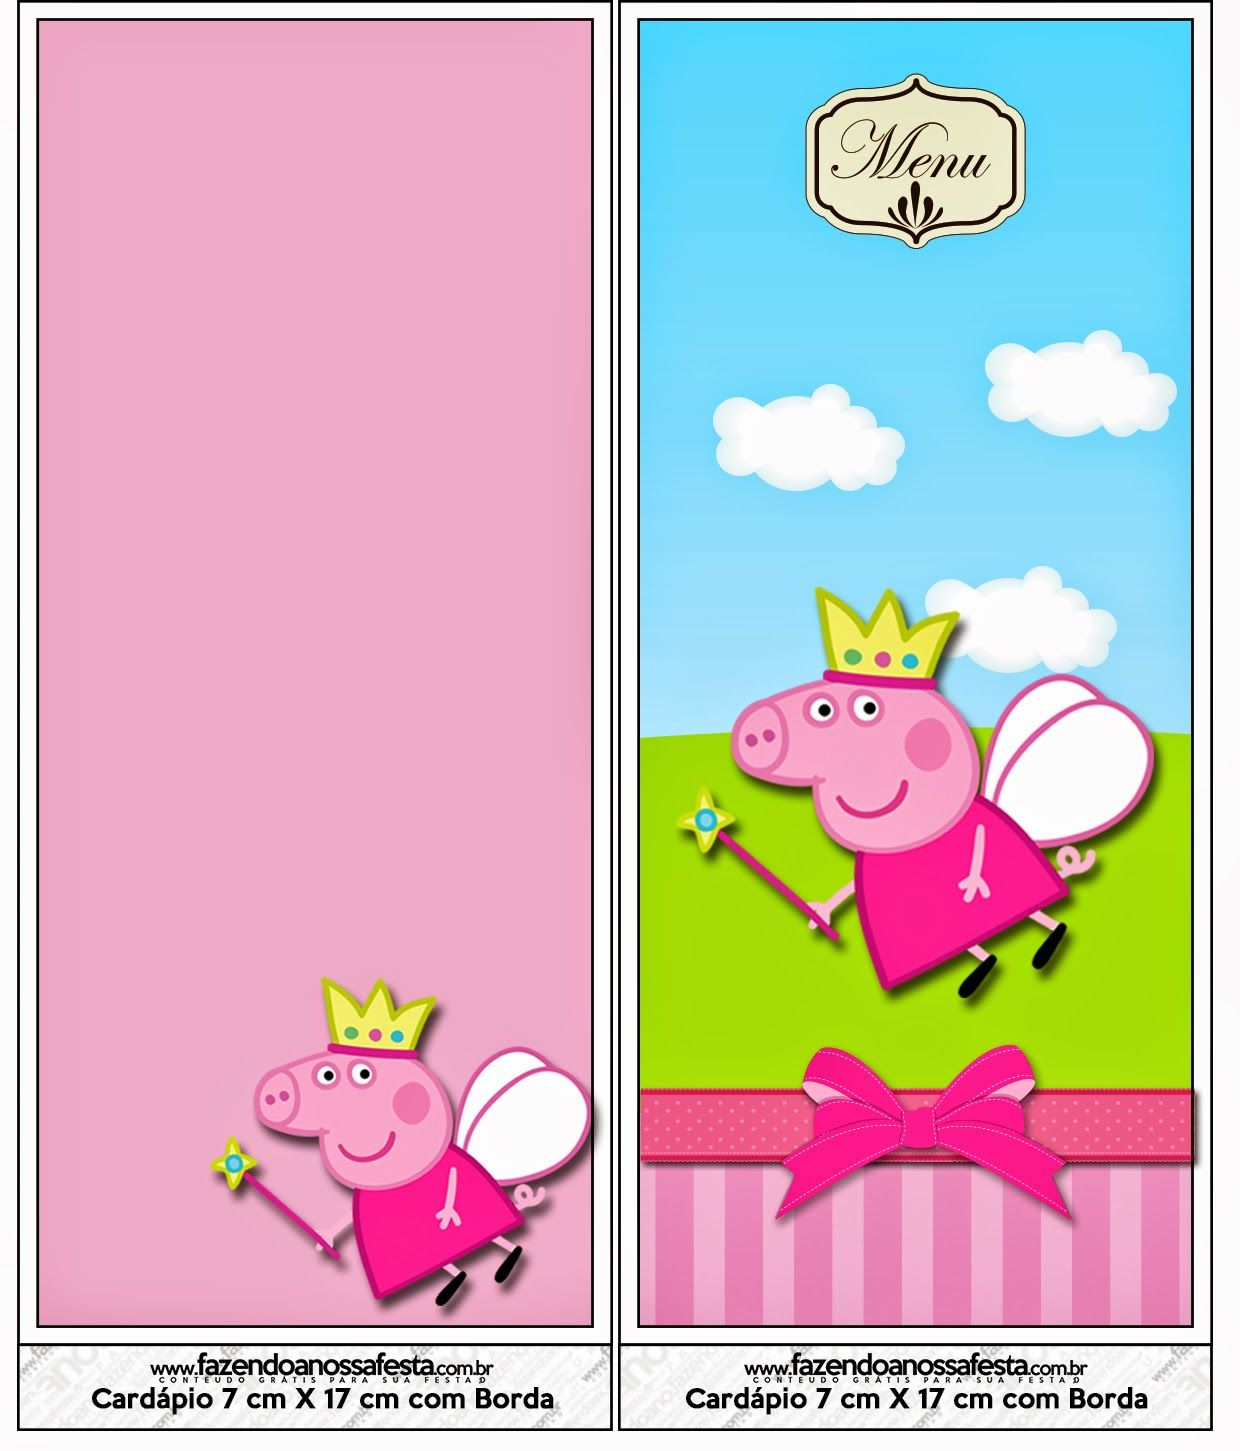 http://www.ohmyfiesta.com/2015/02/peppa-pig-hada-imprimibles ...